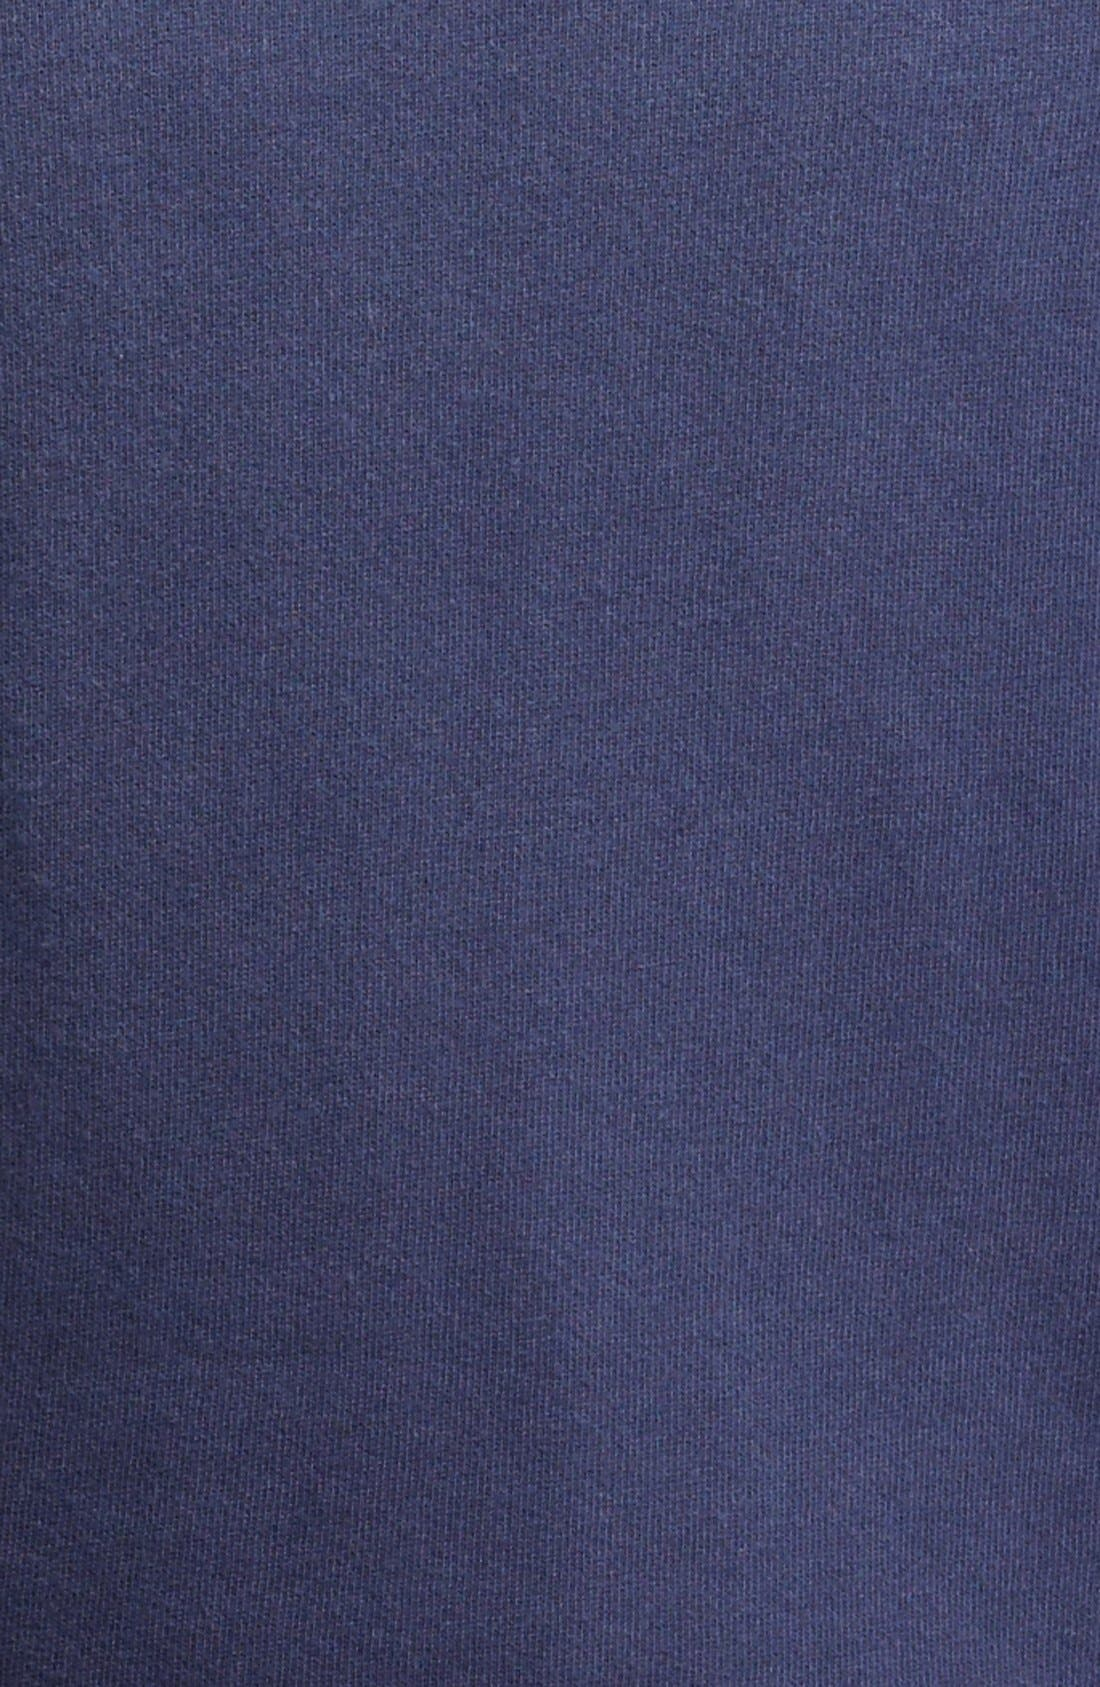 Alternate Image 3  - Polo Ralph Lauren Sweat Shirt